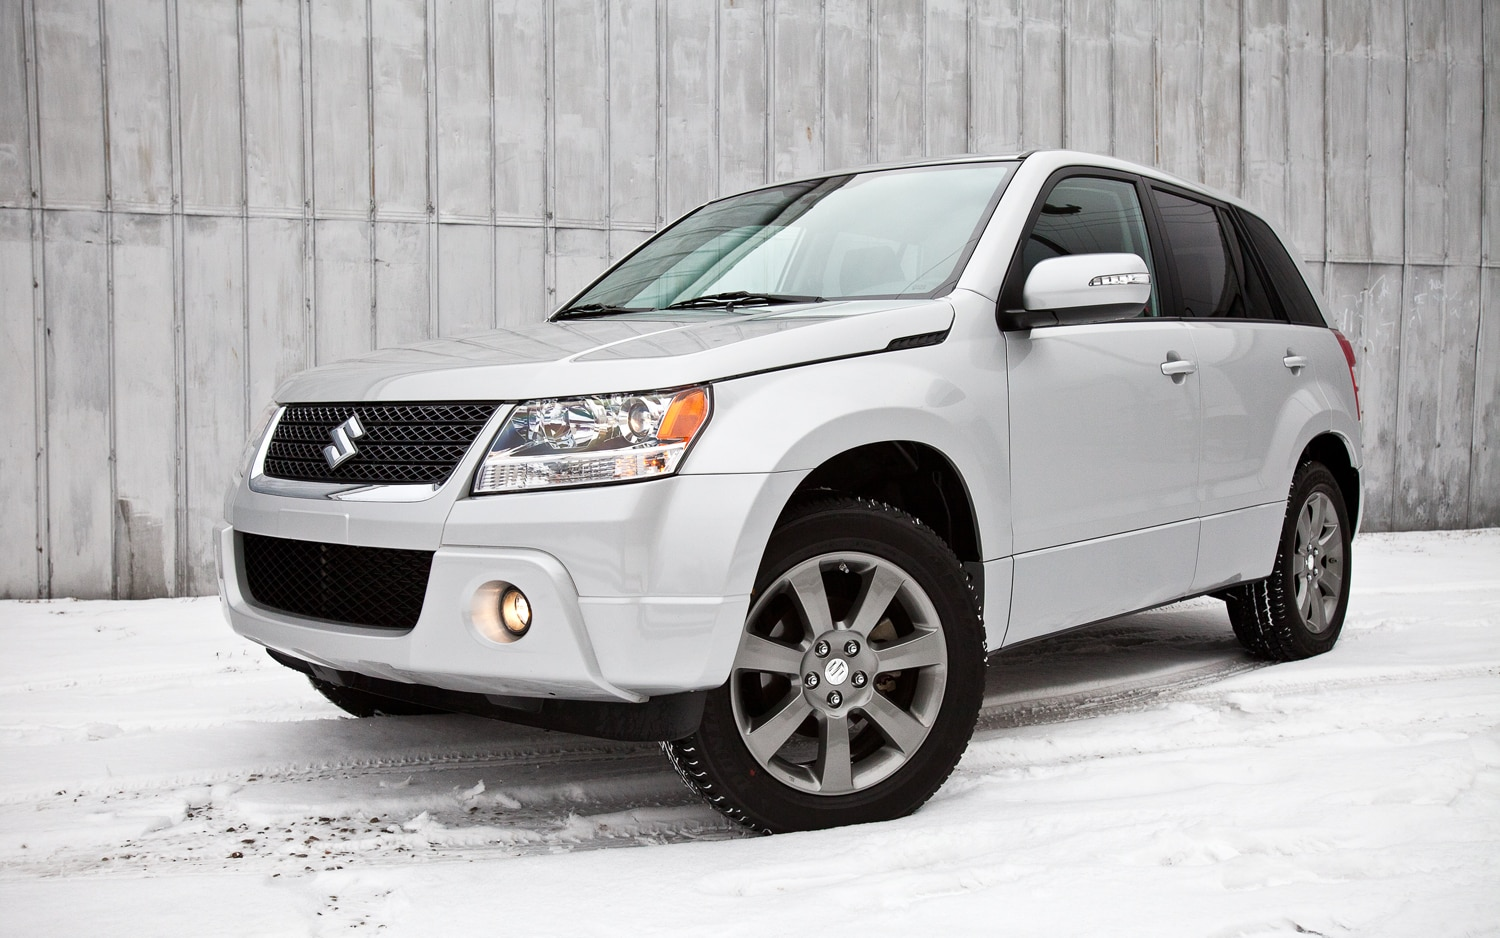 2012 Suzuki Grand Vitara Ultimate Adventure Edition 4WD Navi Front Left View1